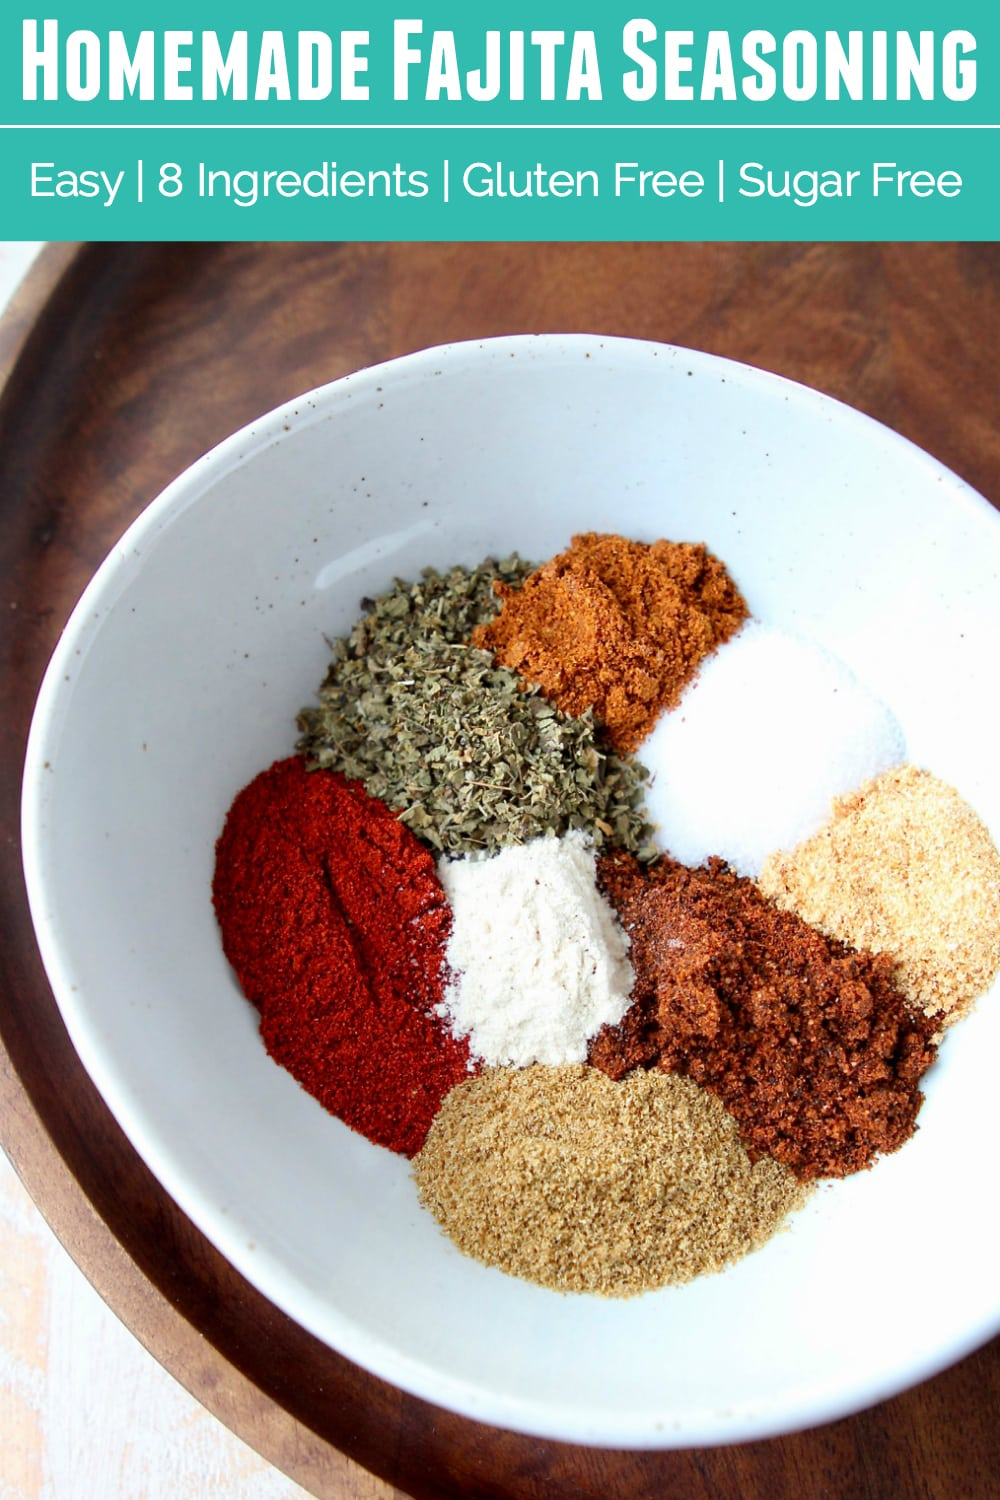 Homemade fajita seasoning is easy to make with this simple 8 ingredient gluten free and whole 30 recipe. It's perfect for steak, vegetables, ...